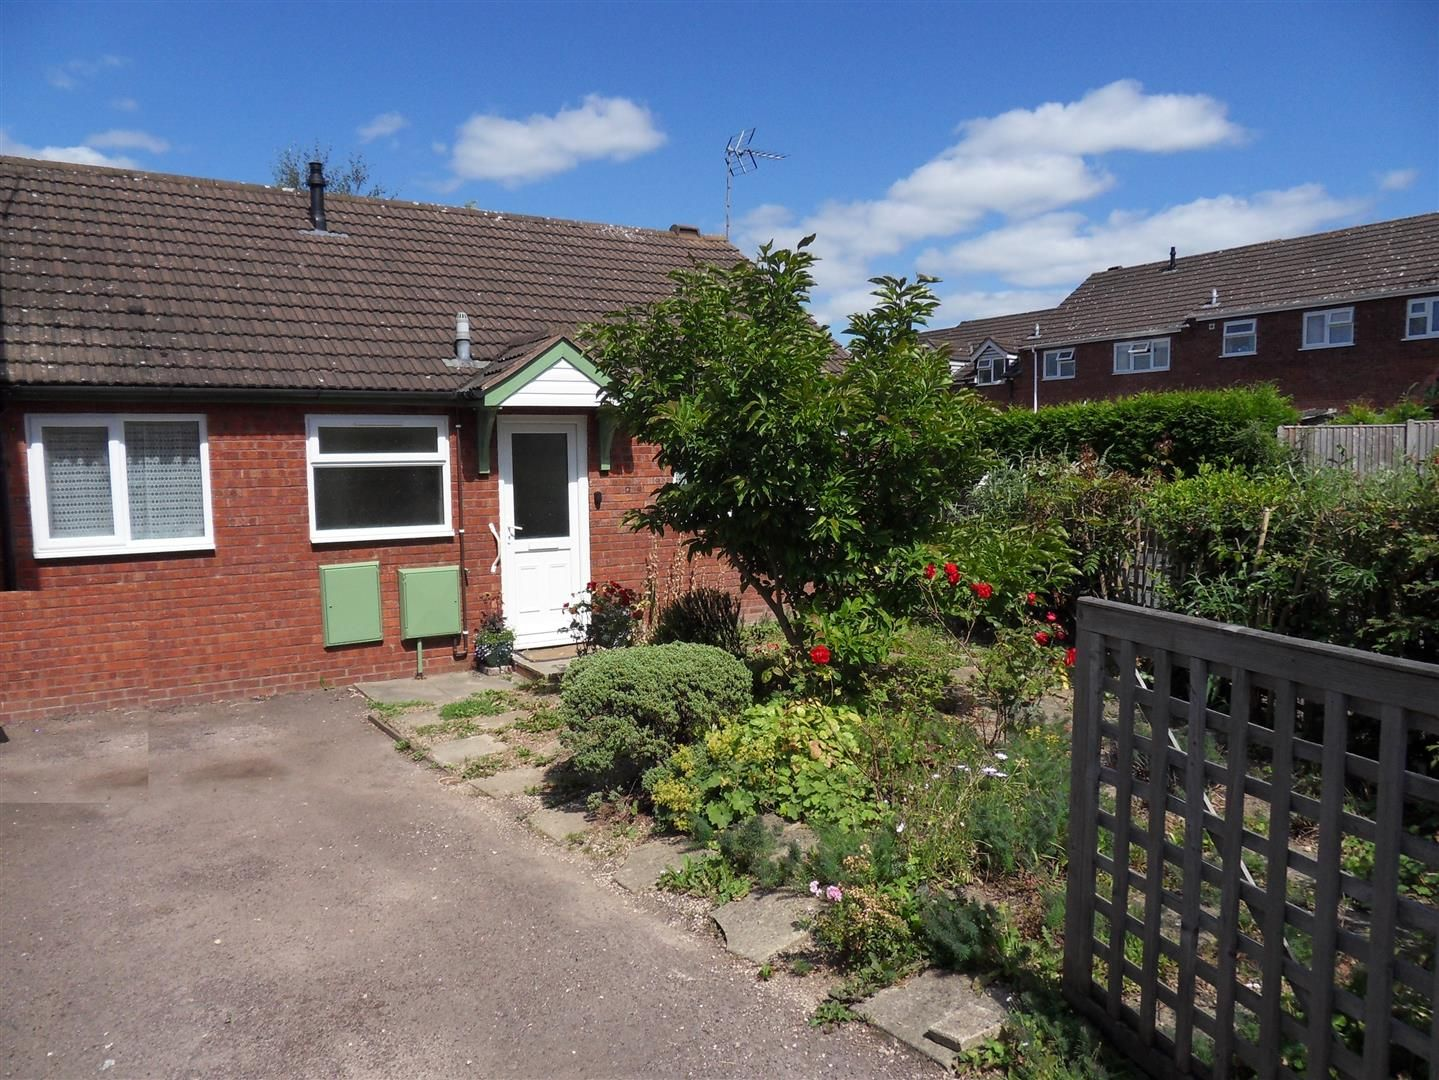 2 bed semi-detached-bungalow to rent, HR2